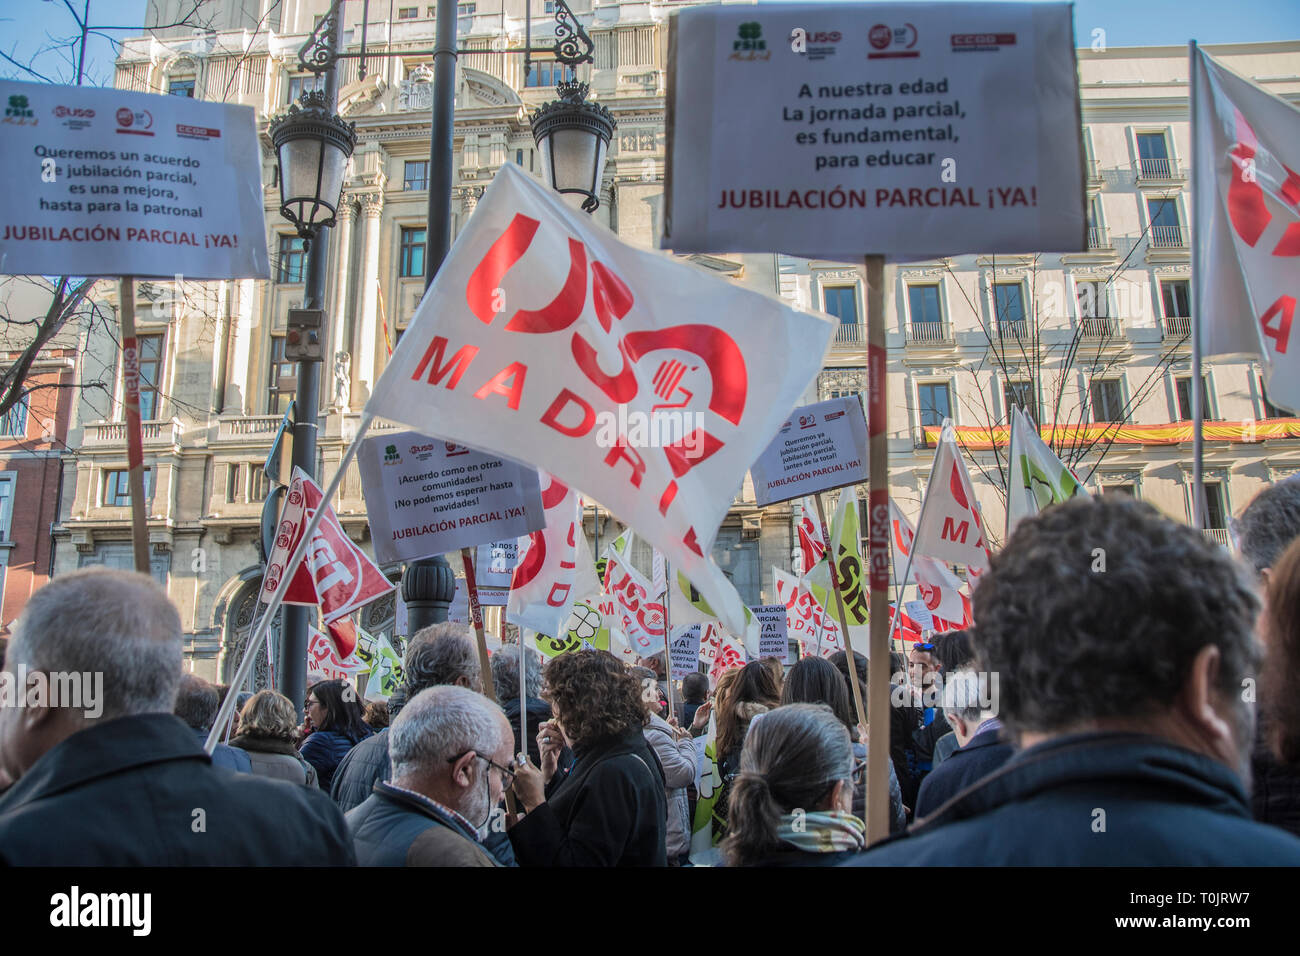 Madrid, Spain. 20th Mar 2019. Teachers with a placard with the motto. At our age, part-time work is essential to educate.  The Ministry of Education and Research is the community of Madrid refuses to sign a partial retirement agreement for teachers. Credit: Alberto Sibaja Ramírez/Alamy Live News Stock Photo